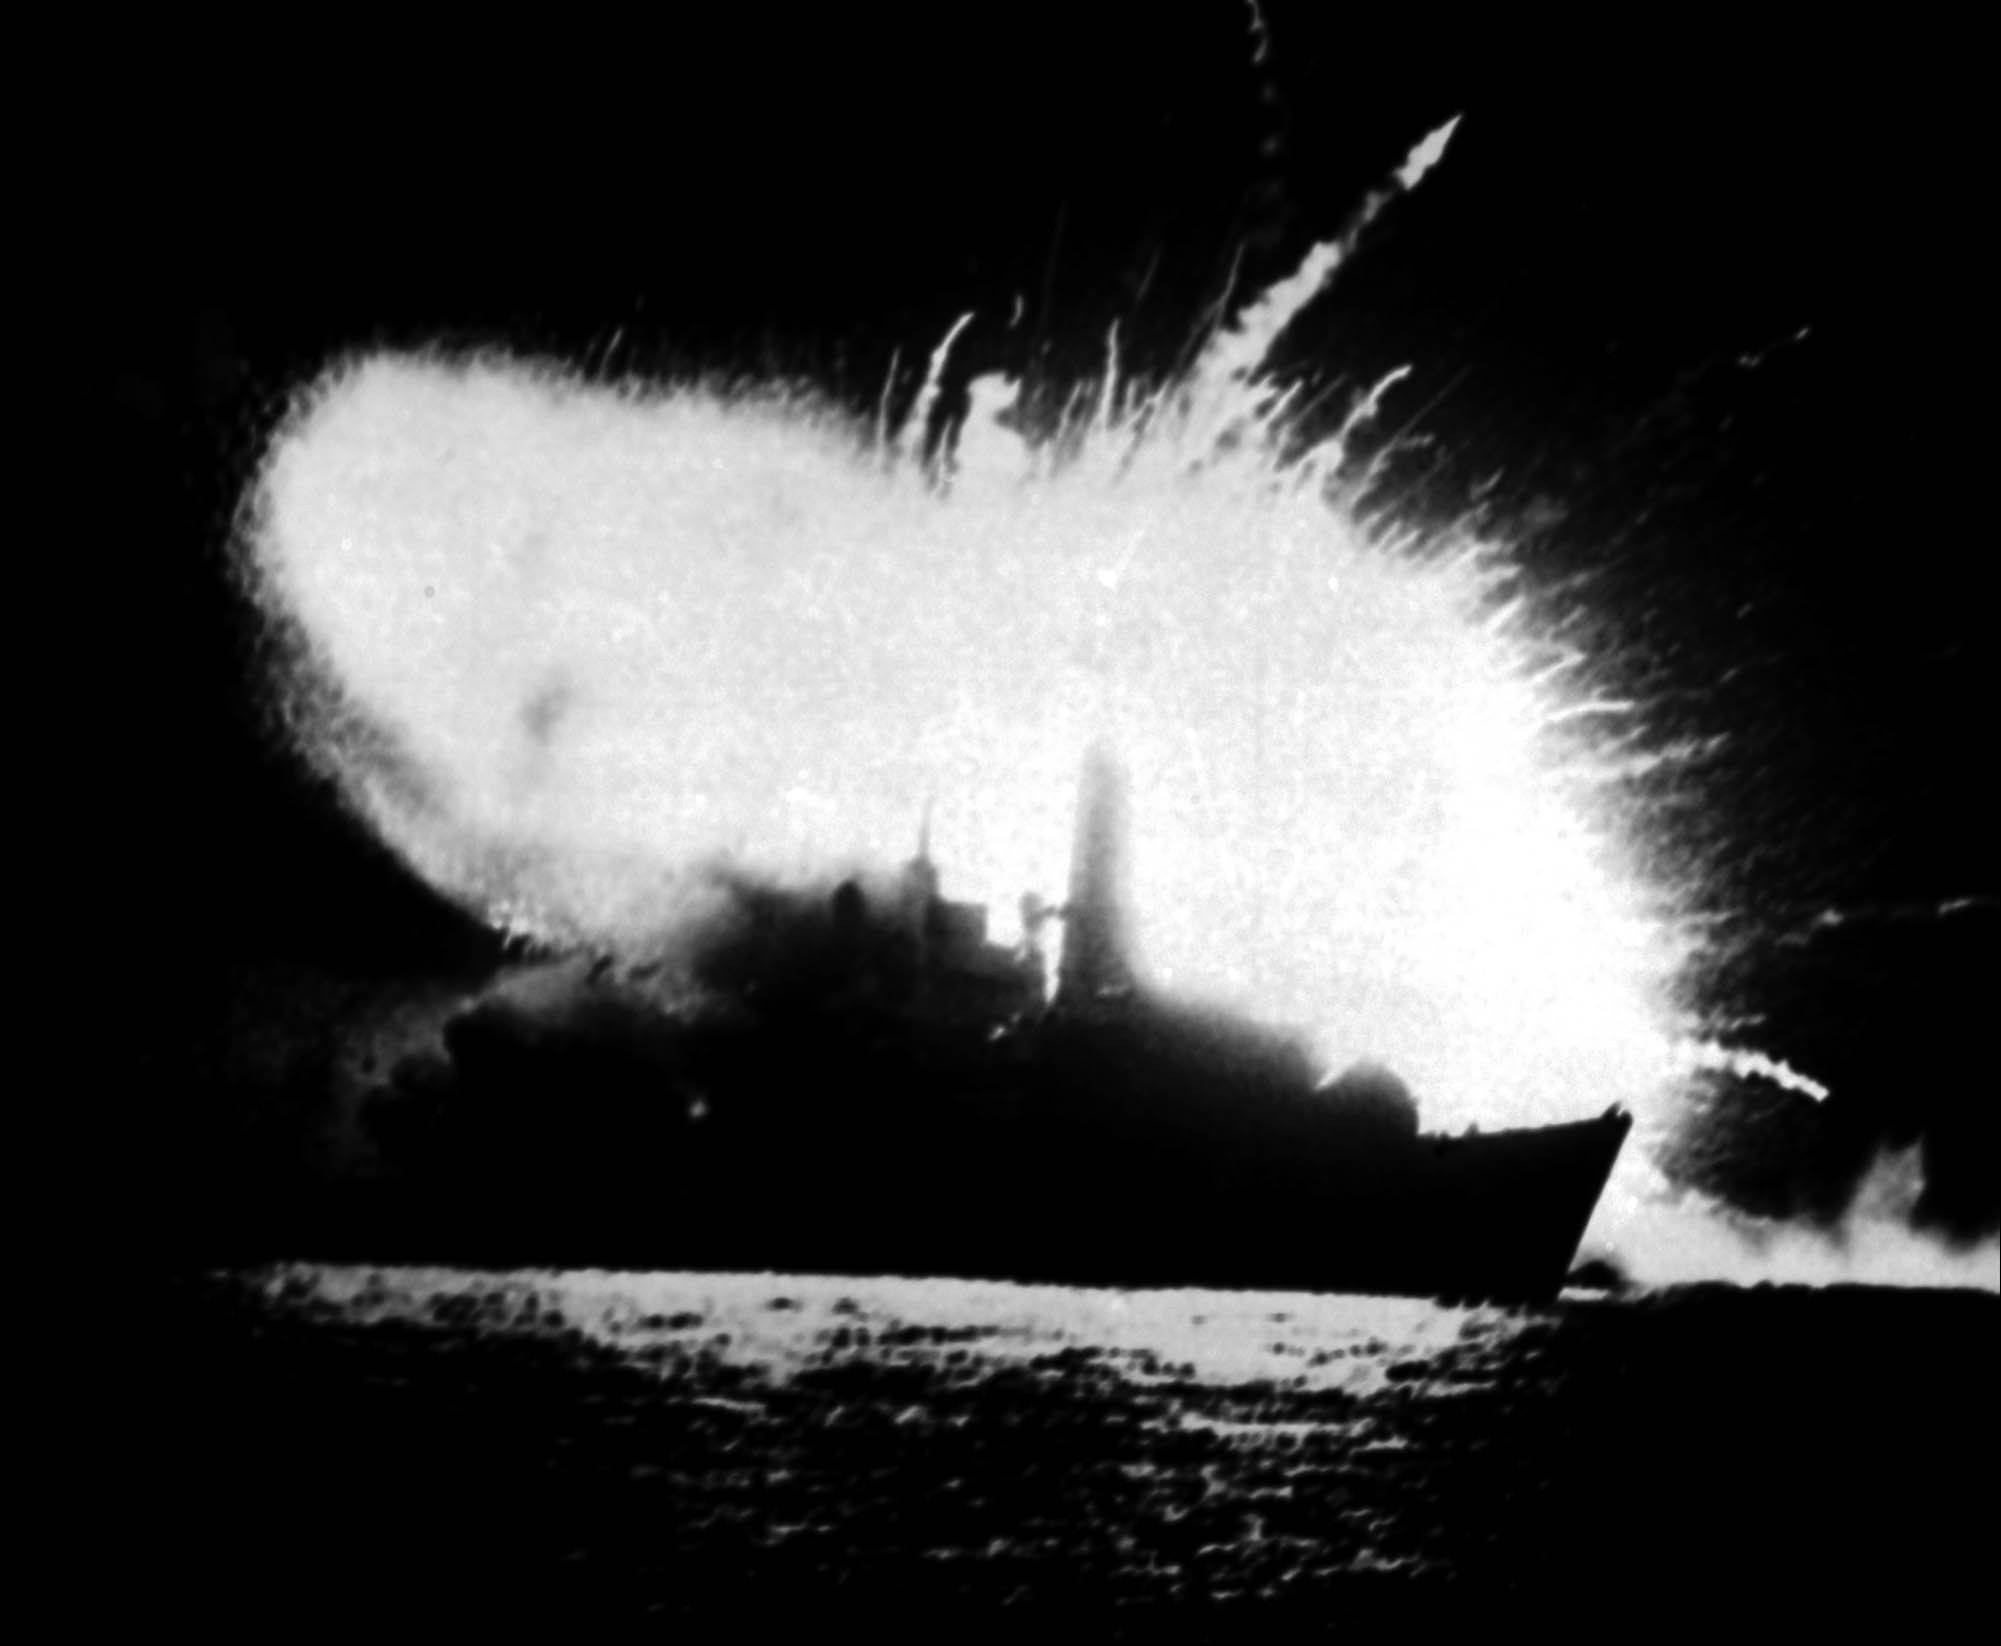 The British frigate HMS Antelope explodes in San Carlos Bay during the war over the Falkland Islands, ruled by Britain and claimed by Argentina. The 10-week conflict killed 712 Argentines, 255 Britons and three islanders. A U.N. committee on decolonization wants Britain and Argentina to negotiate over the islands, but Britain says it's up to the islanders to decide their future.